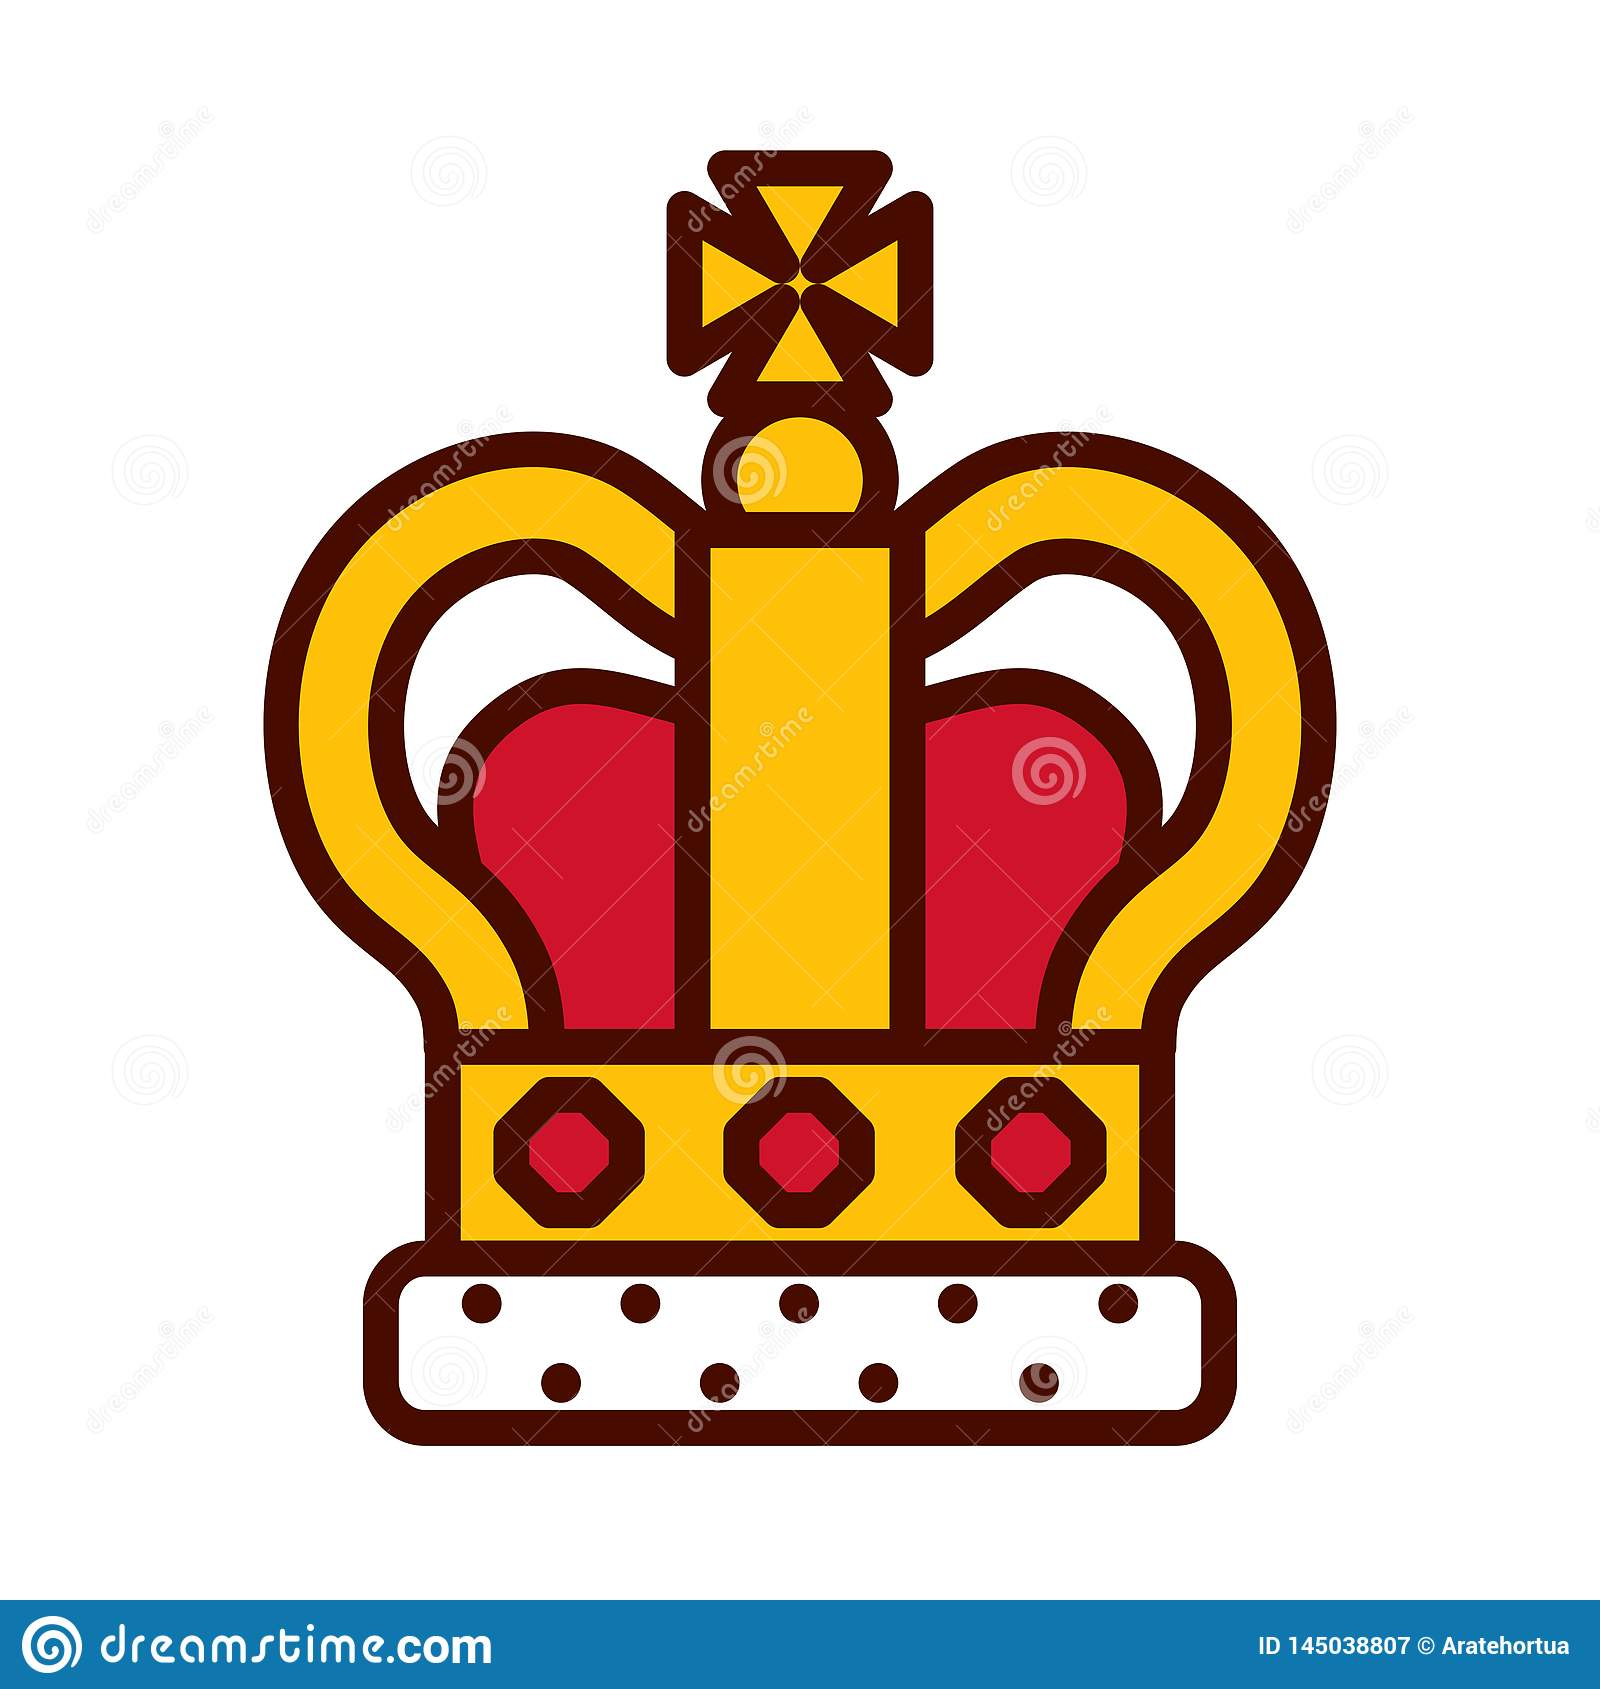 Cartoon Queen Crown Icon Isolated Stock Vector Illustration Of Emperor Isolated 145038807 Gold king crown, king and queen crowns, kings crown, crown royal, creation logo png, crown png, princess logo, free logo creator, crown illustration. https www dreamstime com cartoon queen crown icon isolated vector image145038807